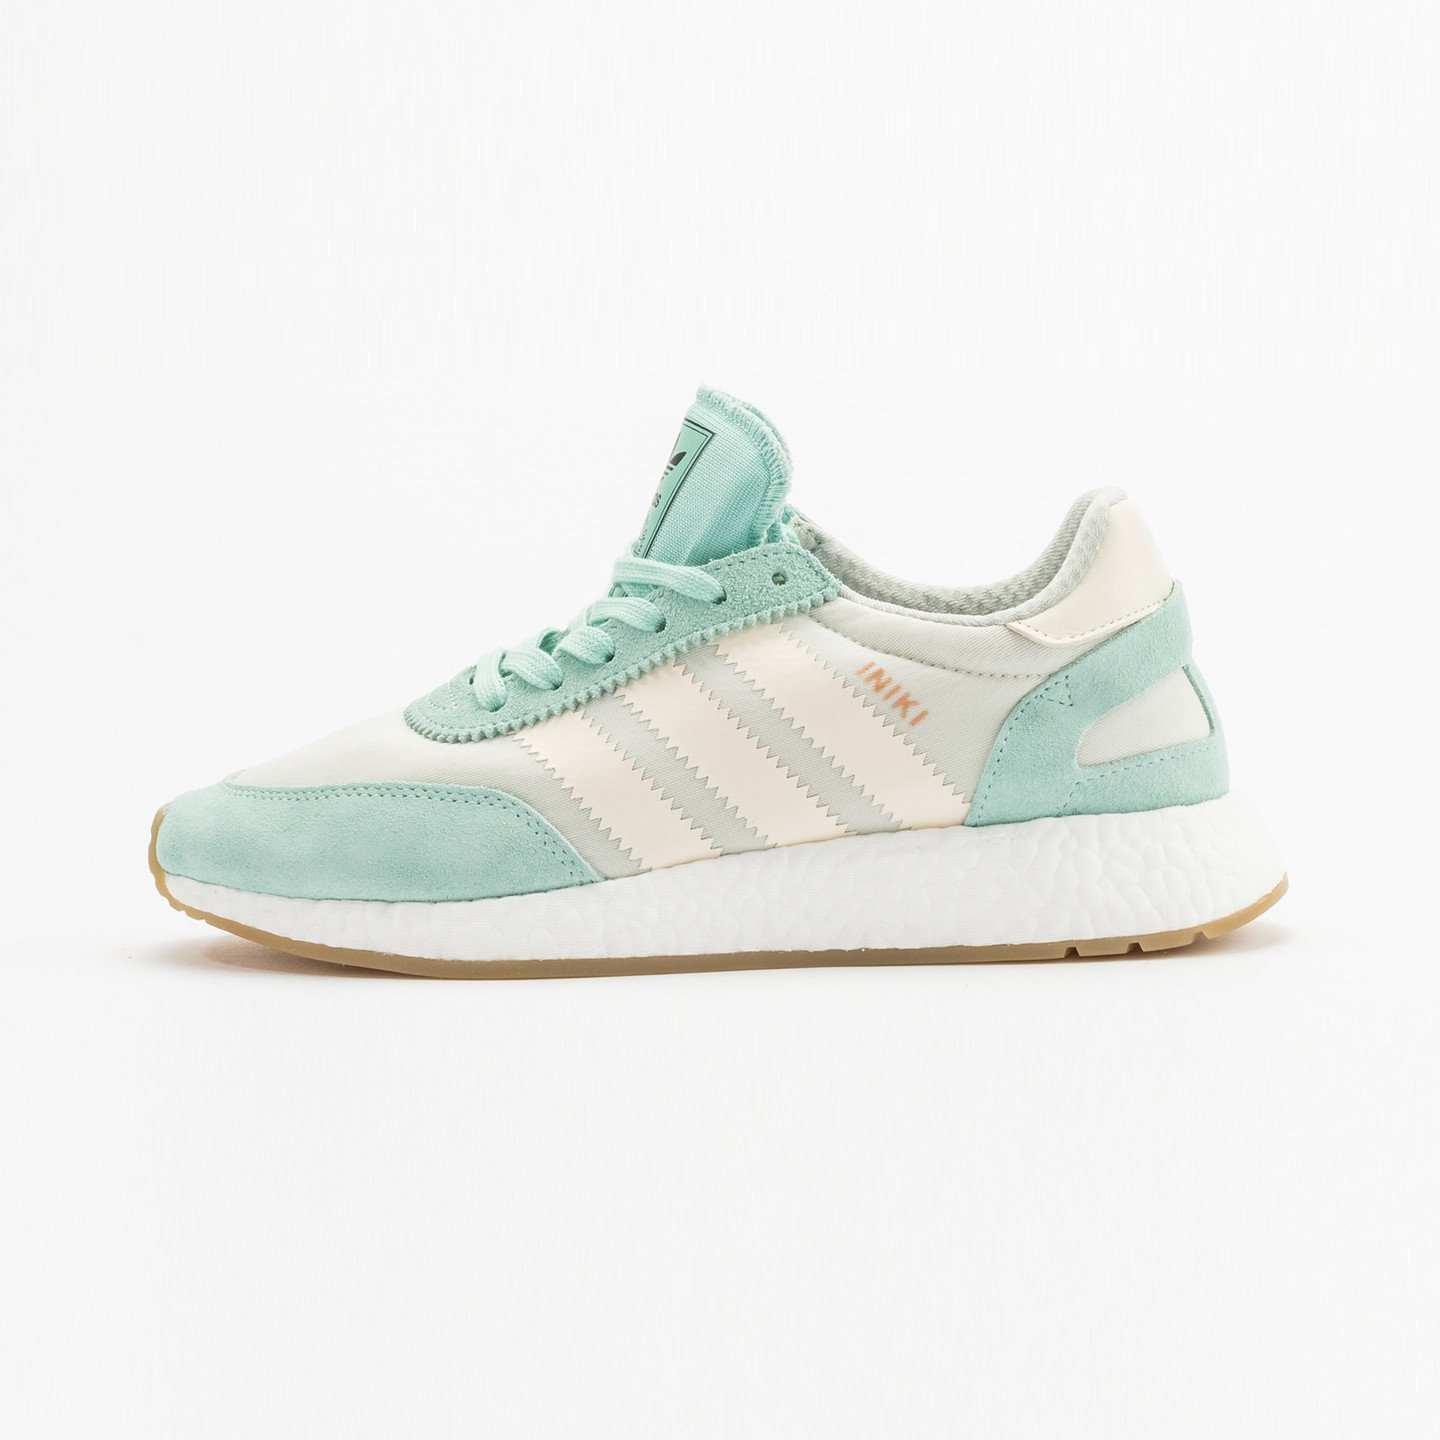 Adidas Iniki Runner W Easy Green / Cream White / Linen Green BA9994-37.33